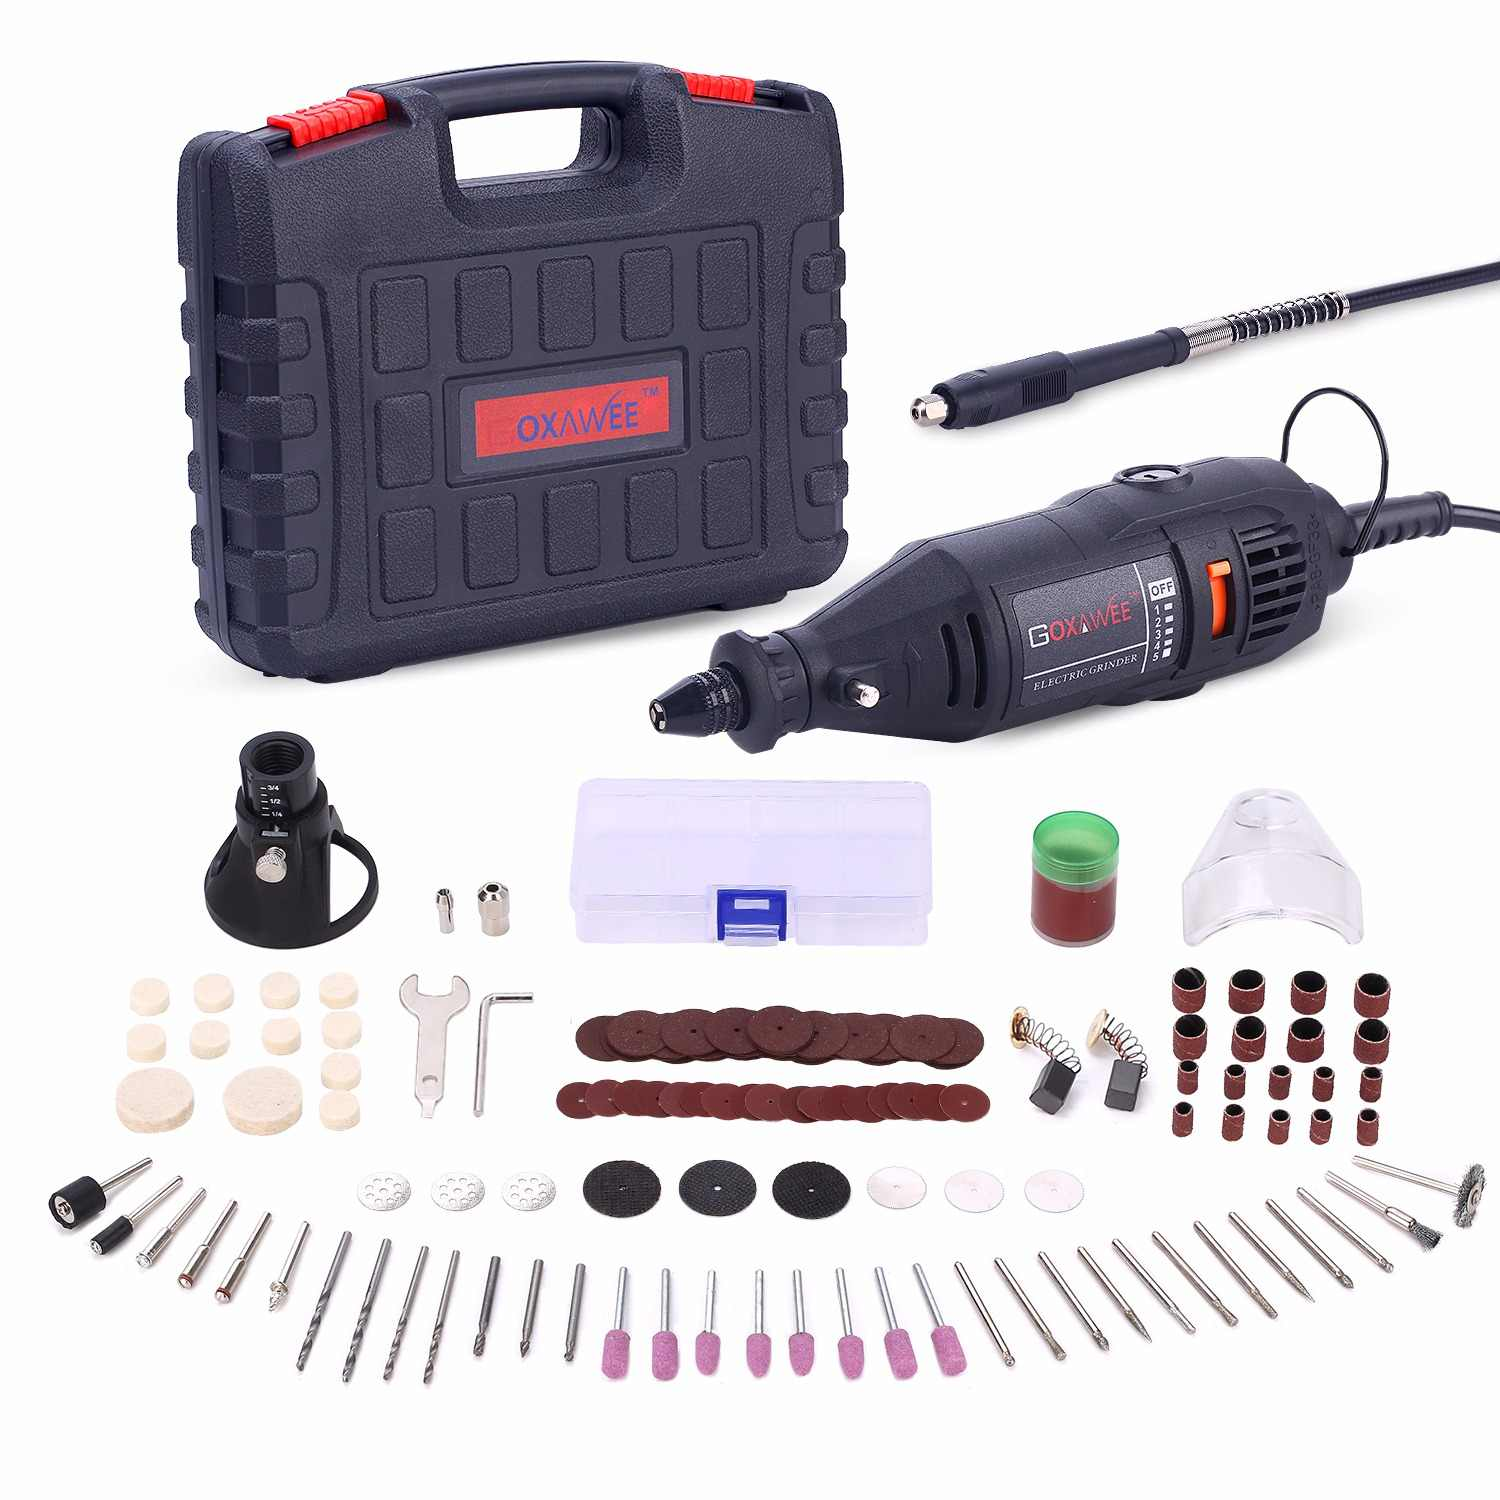 goxawee 220v power tools electric mini drill with 0 3 3 2mm univrersal chuck shiled [ 1500 x 1500 Pixel ]